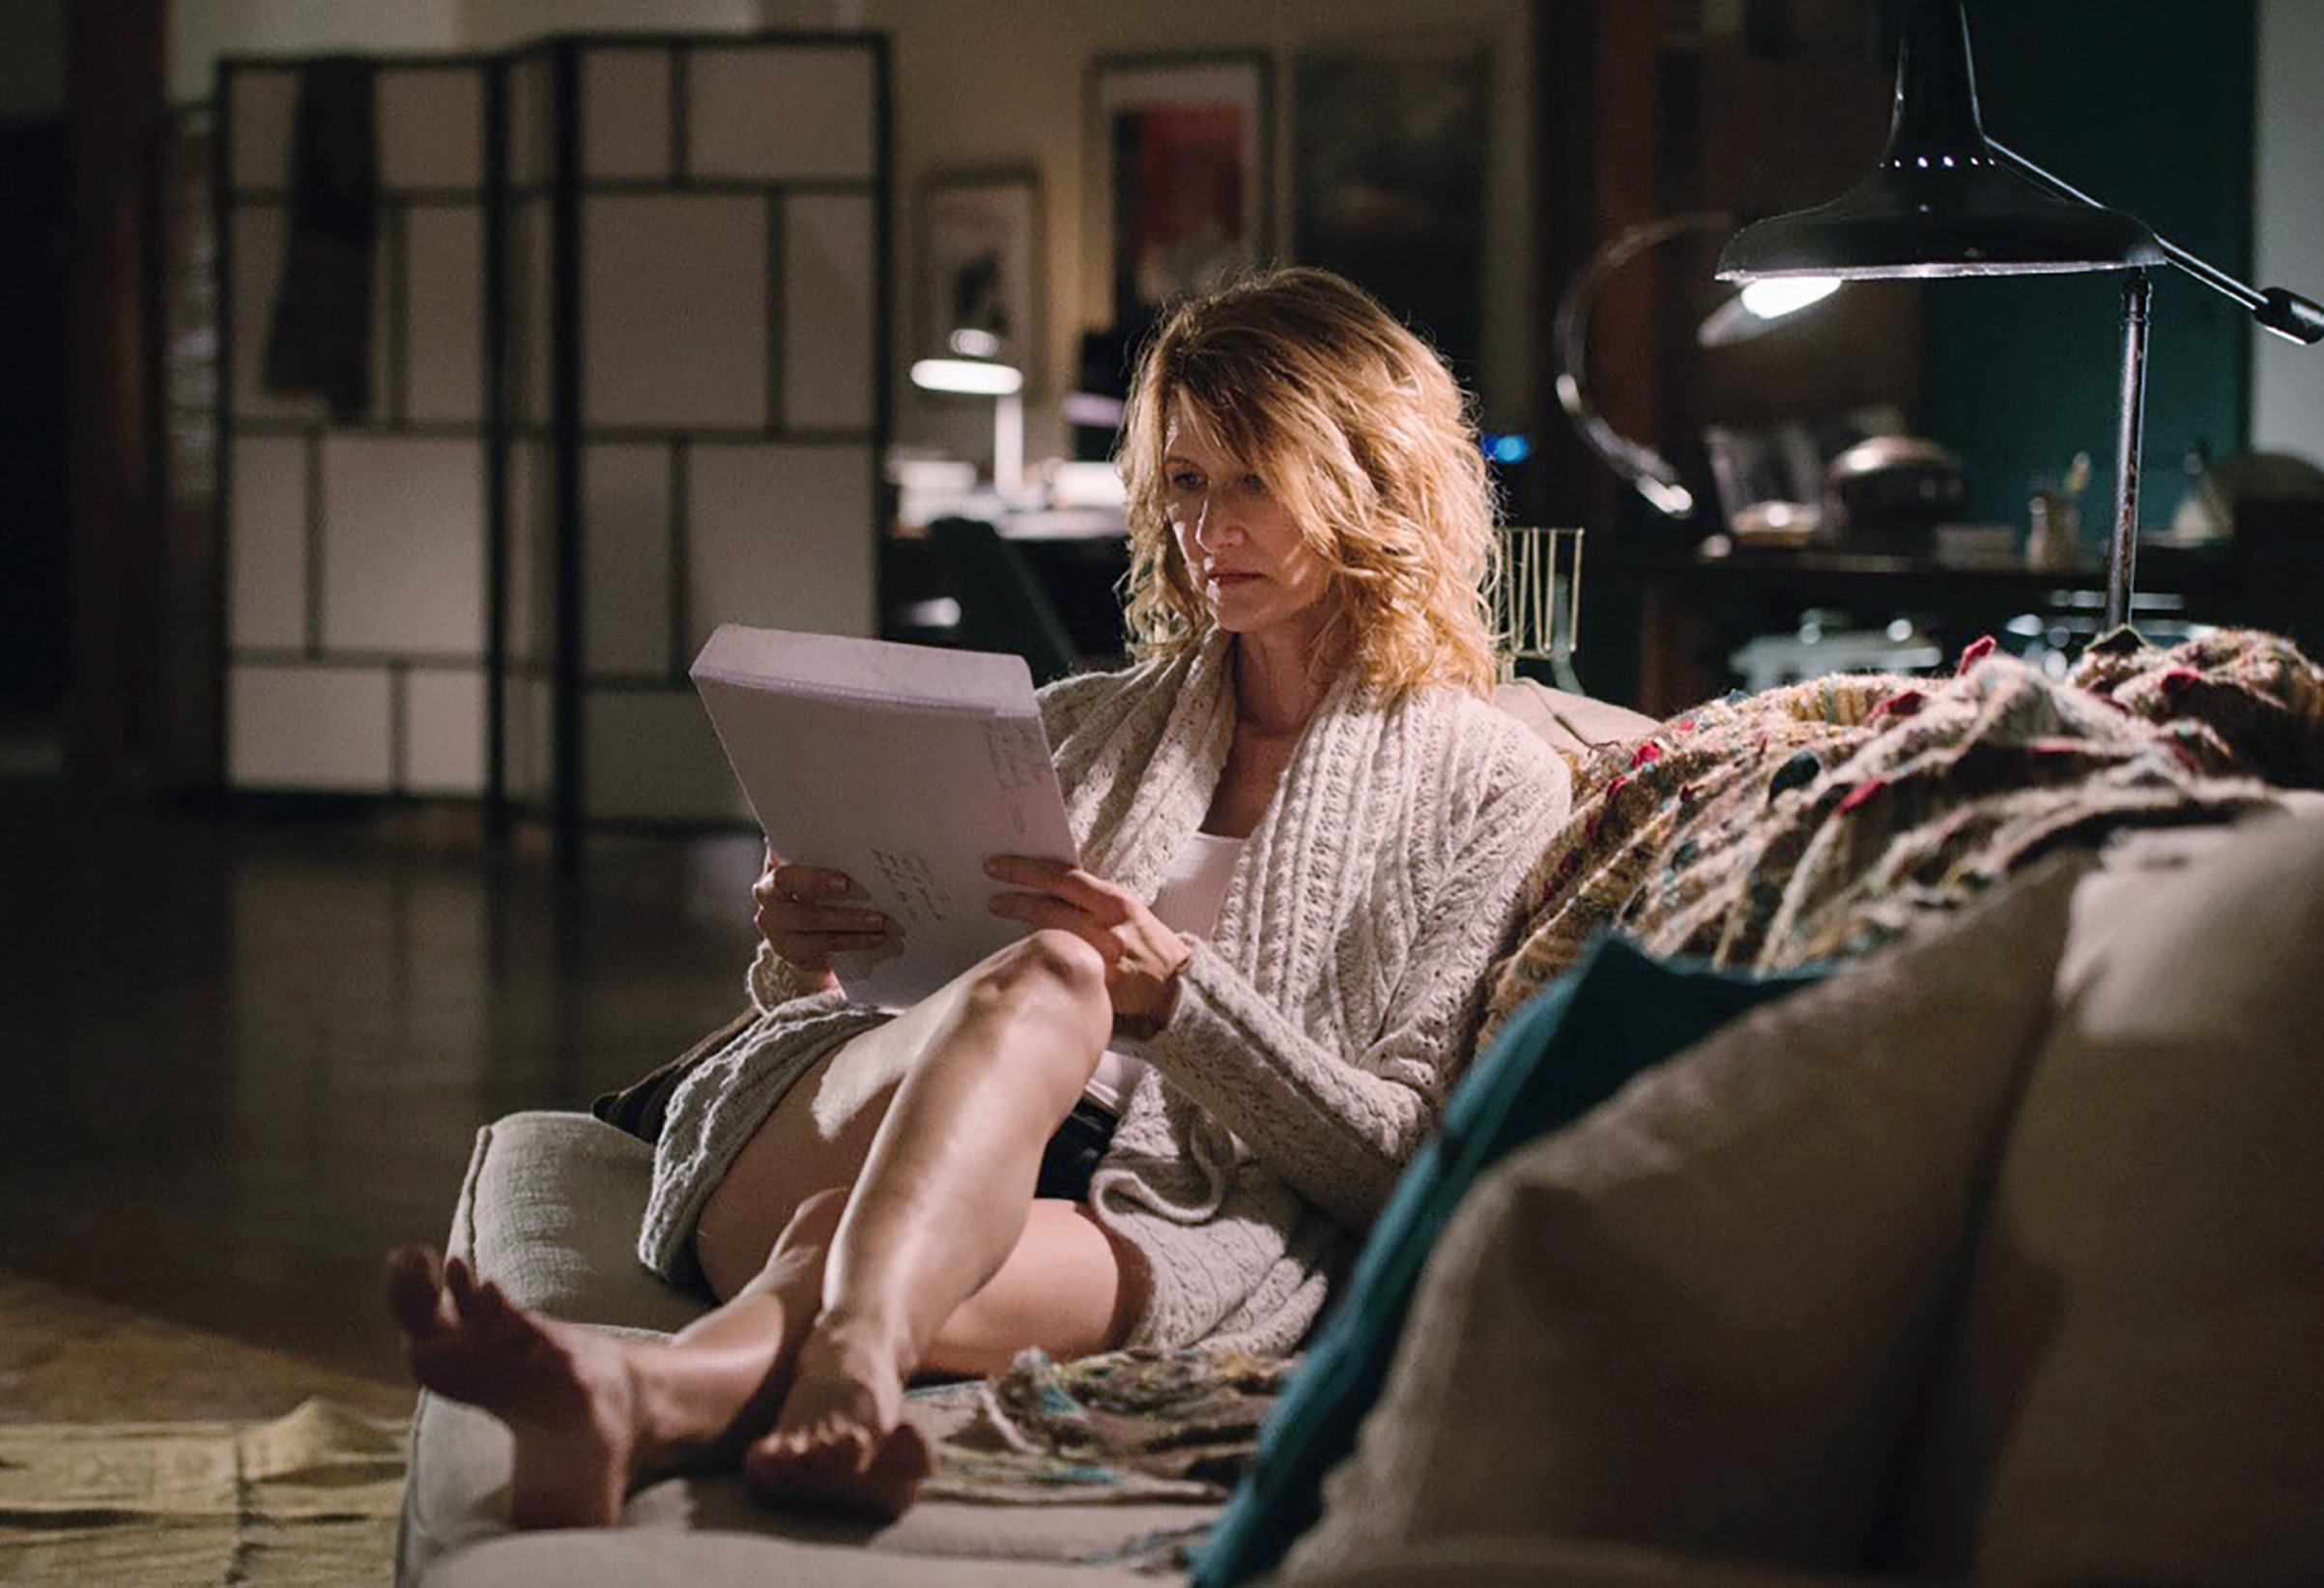 Jennifer Fox (Laura Dern) re-evaluates her own story